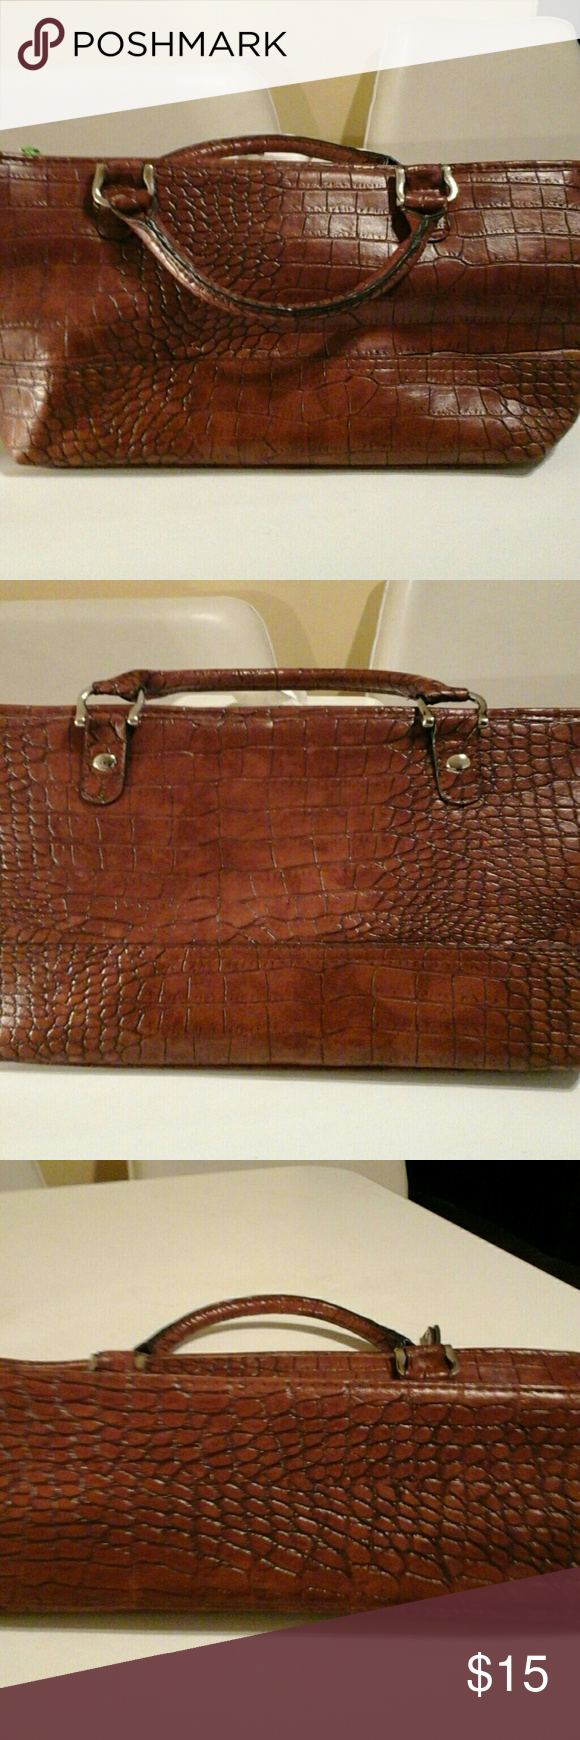 A BUENO BAG It is man made with the look of genuine leather.  It has a beautiful sheen, is lightweight, can hold quite a bit, and has a cross body strap.  Looks brand  new. Bueno Bag Bags Satchels